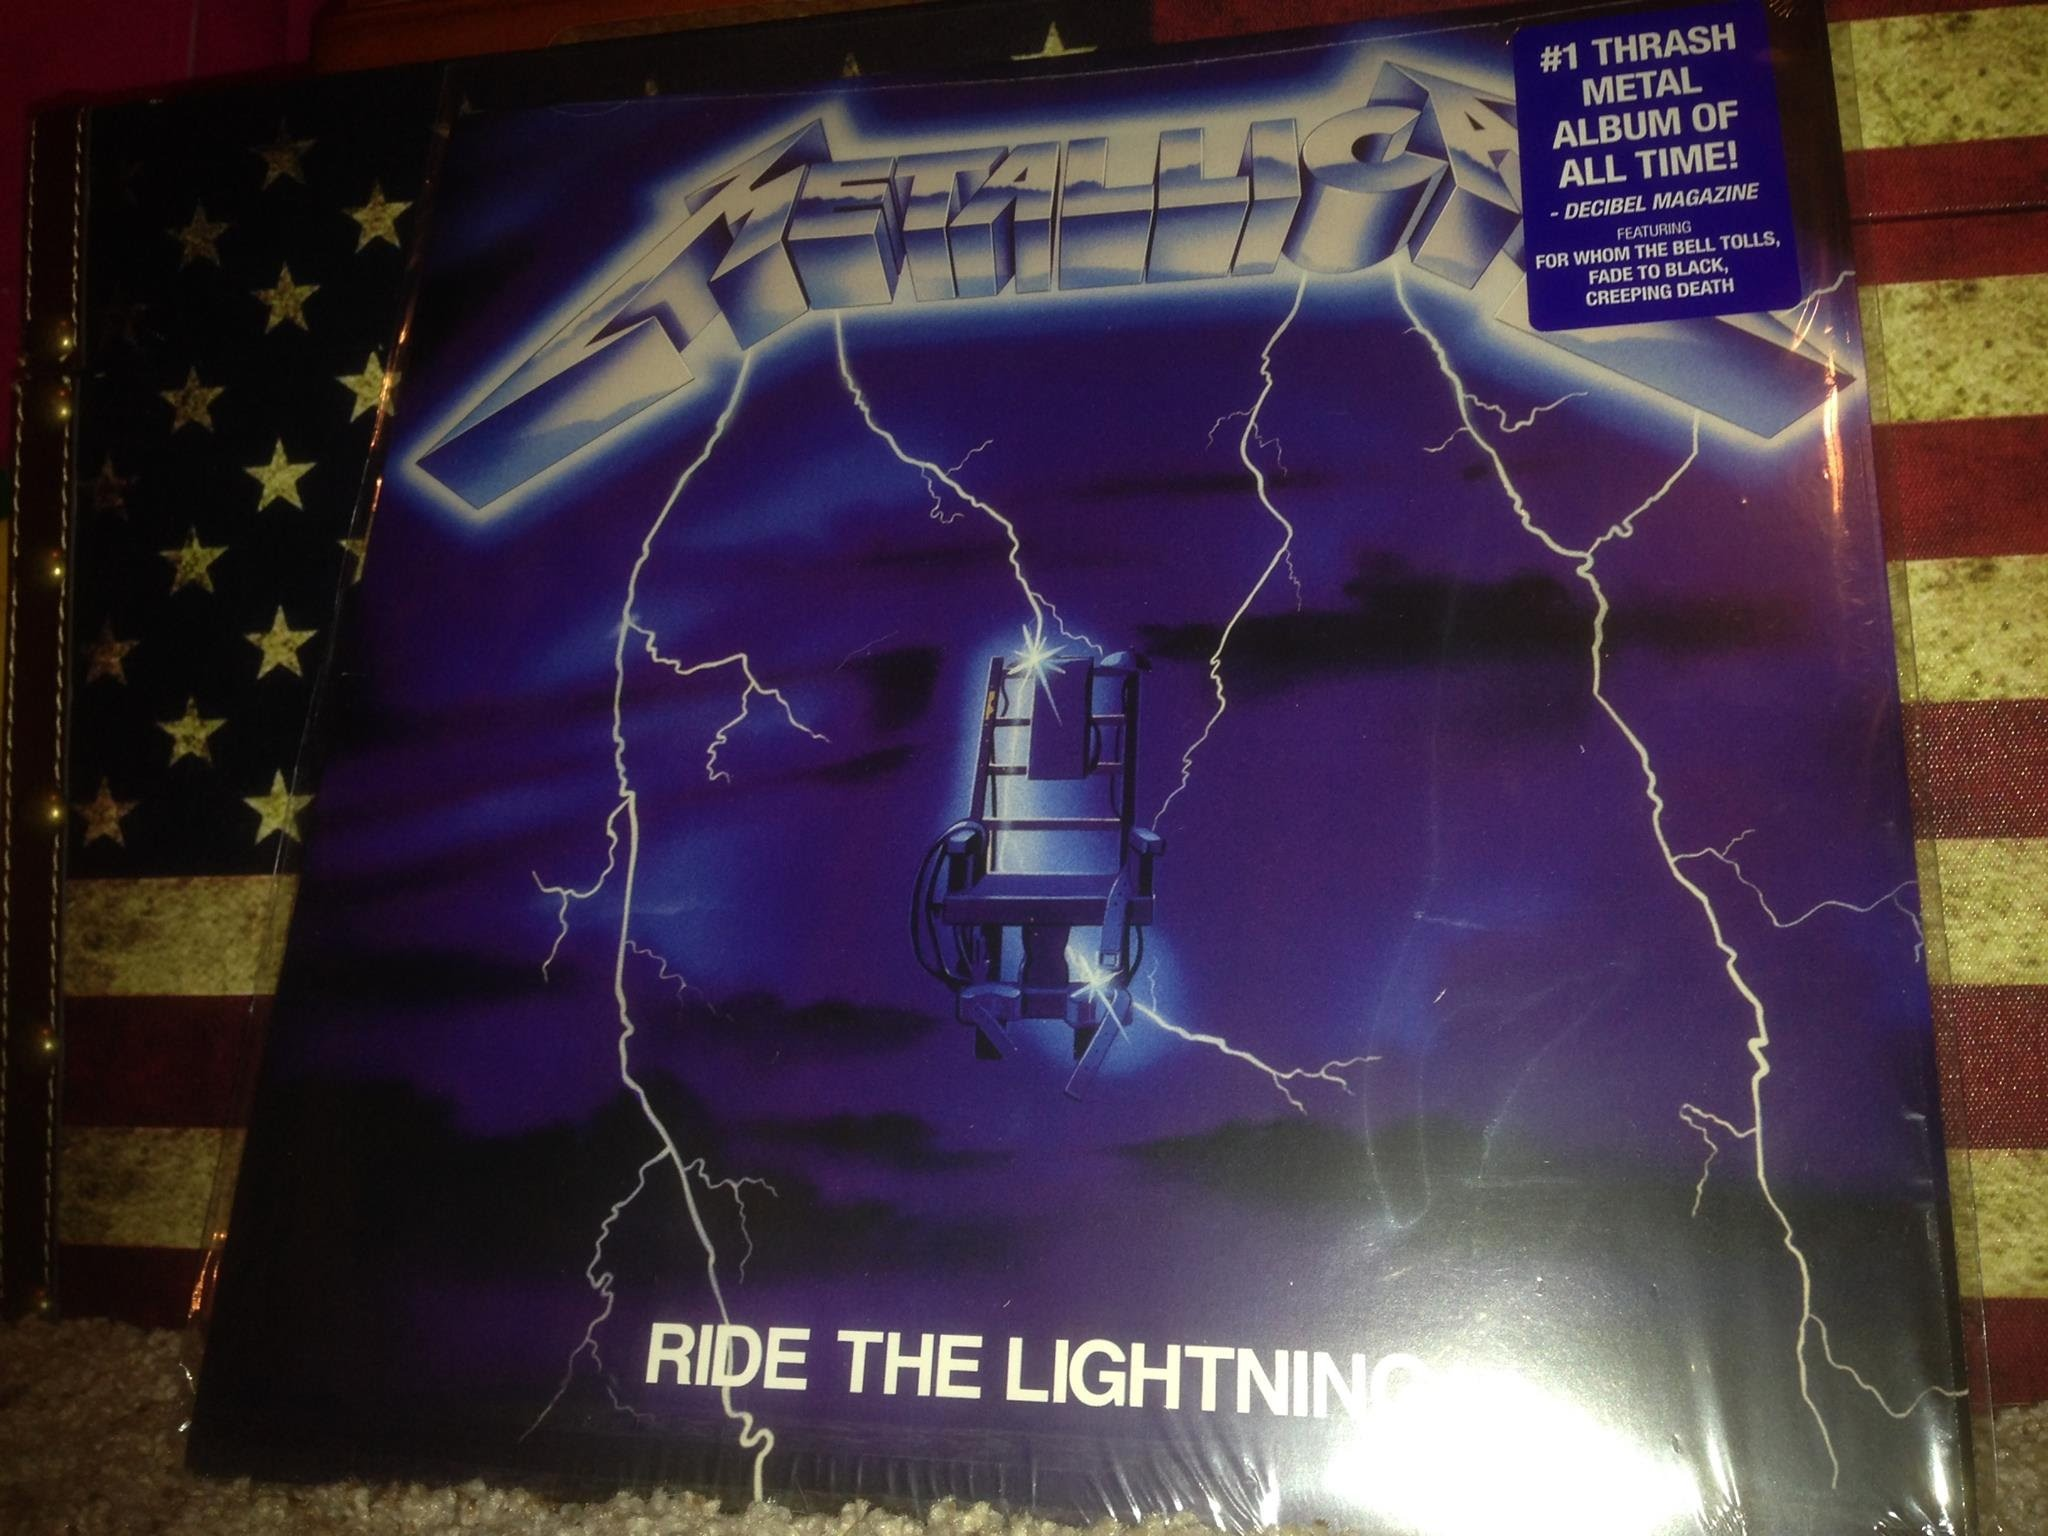 The Rock Hd Wallpapers 1080p Metallica Ride The Lightning Wallpaper 62 Images